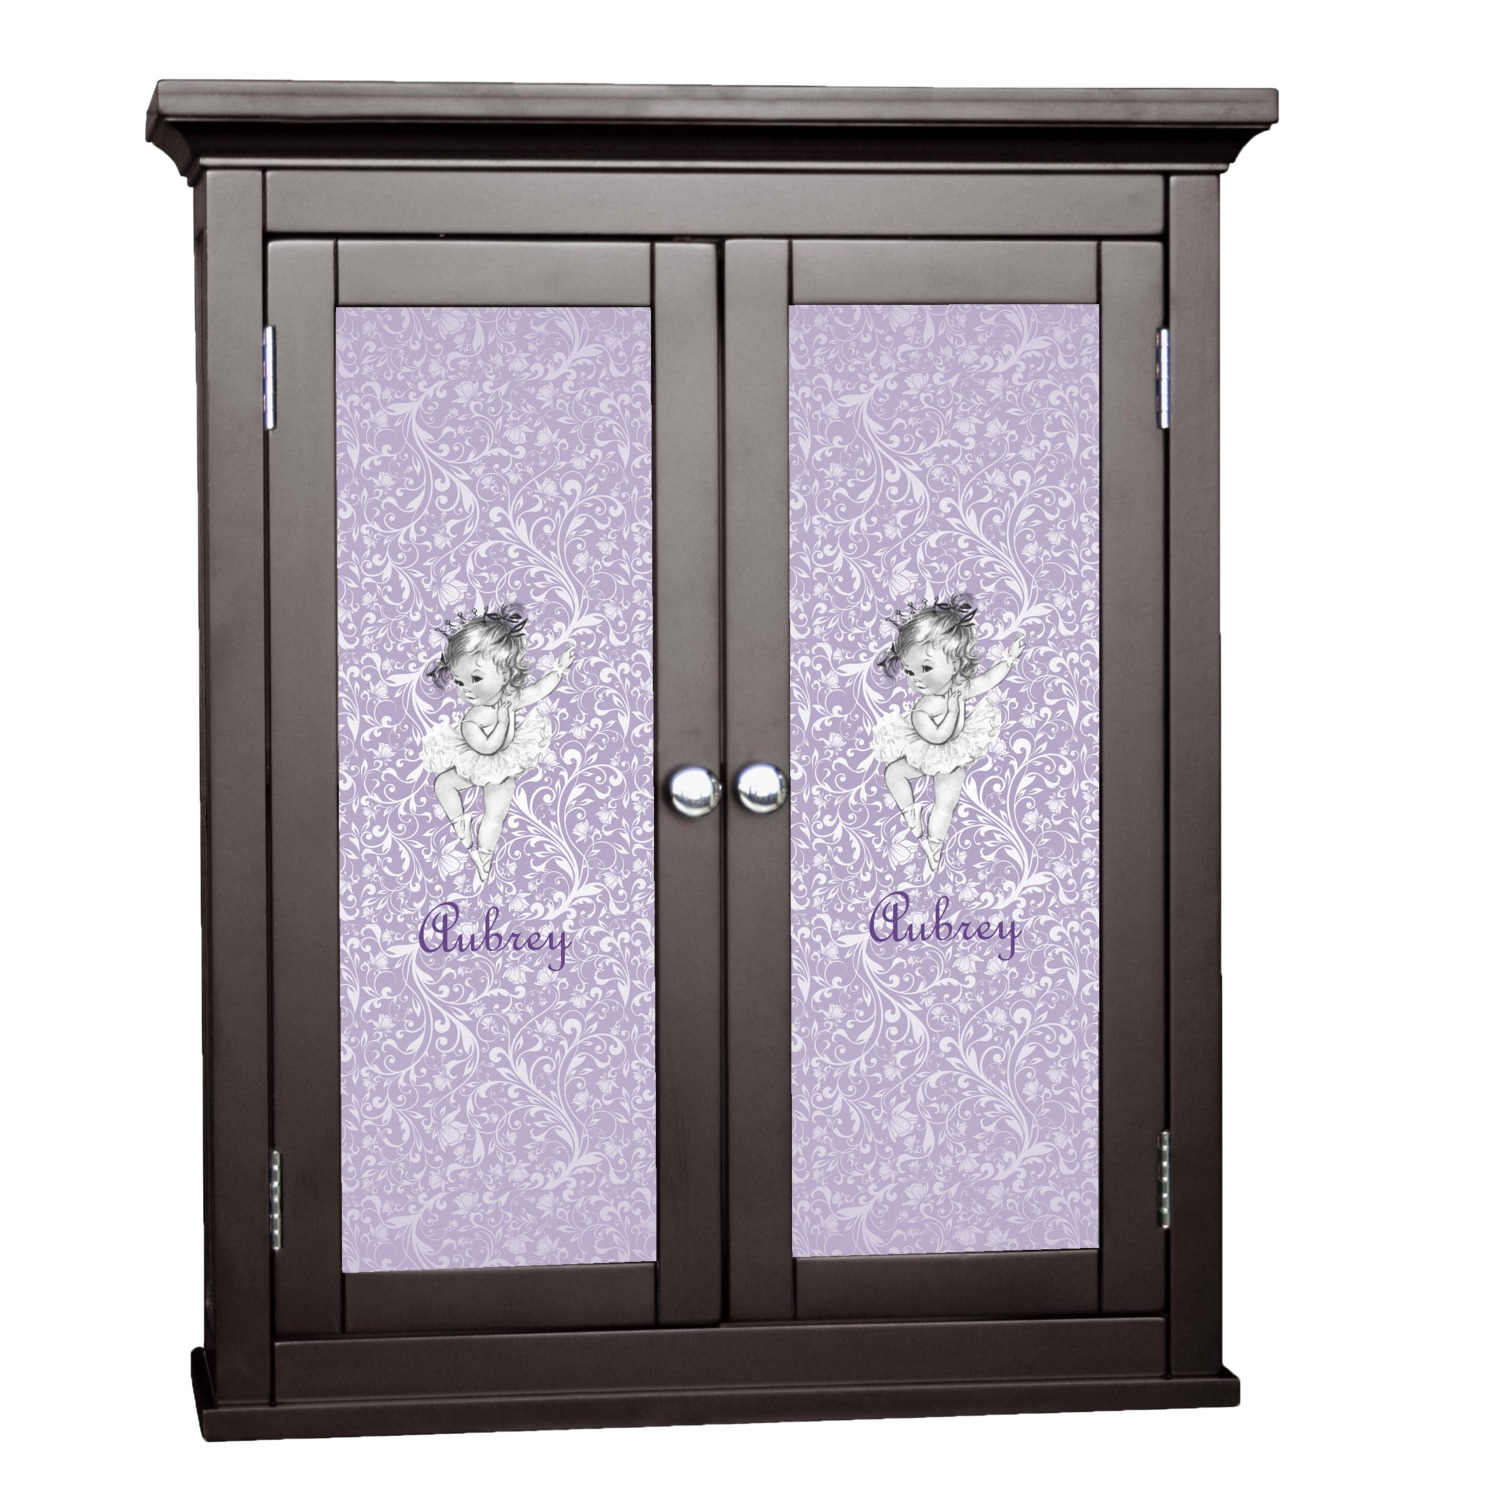 Ballerina cabinet decal large personalized for Kitchen cabinets lowes with free custom stickers